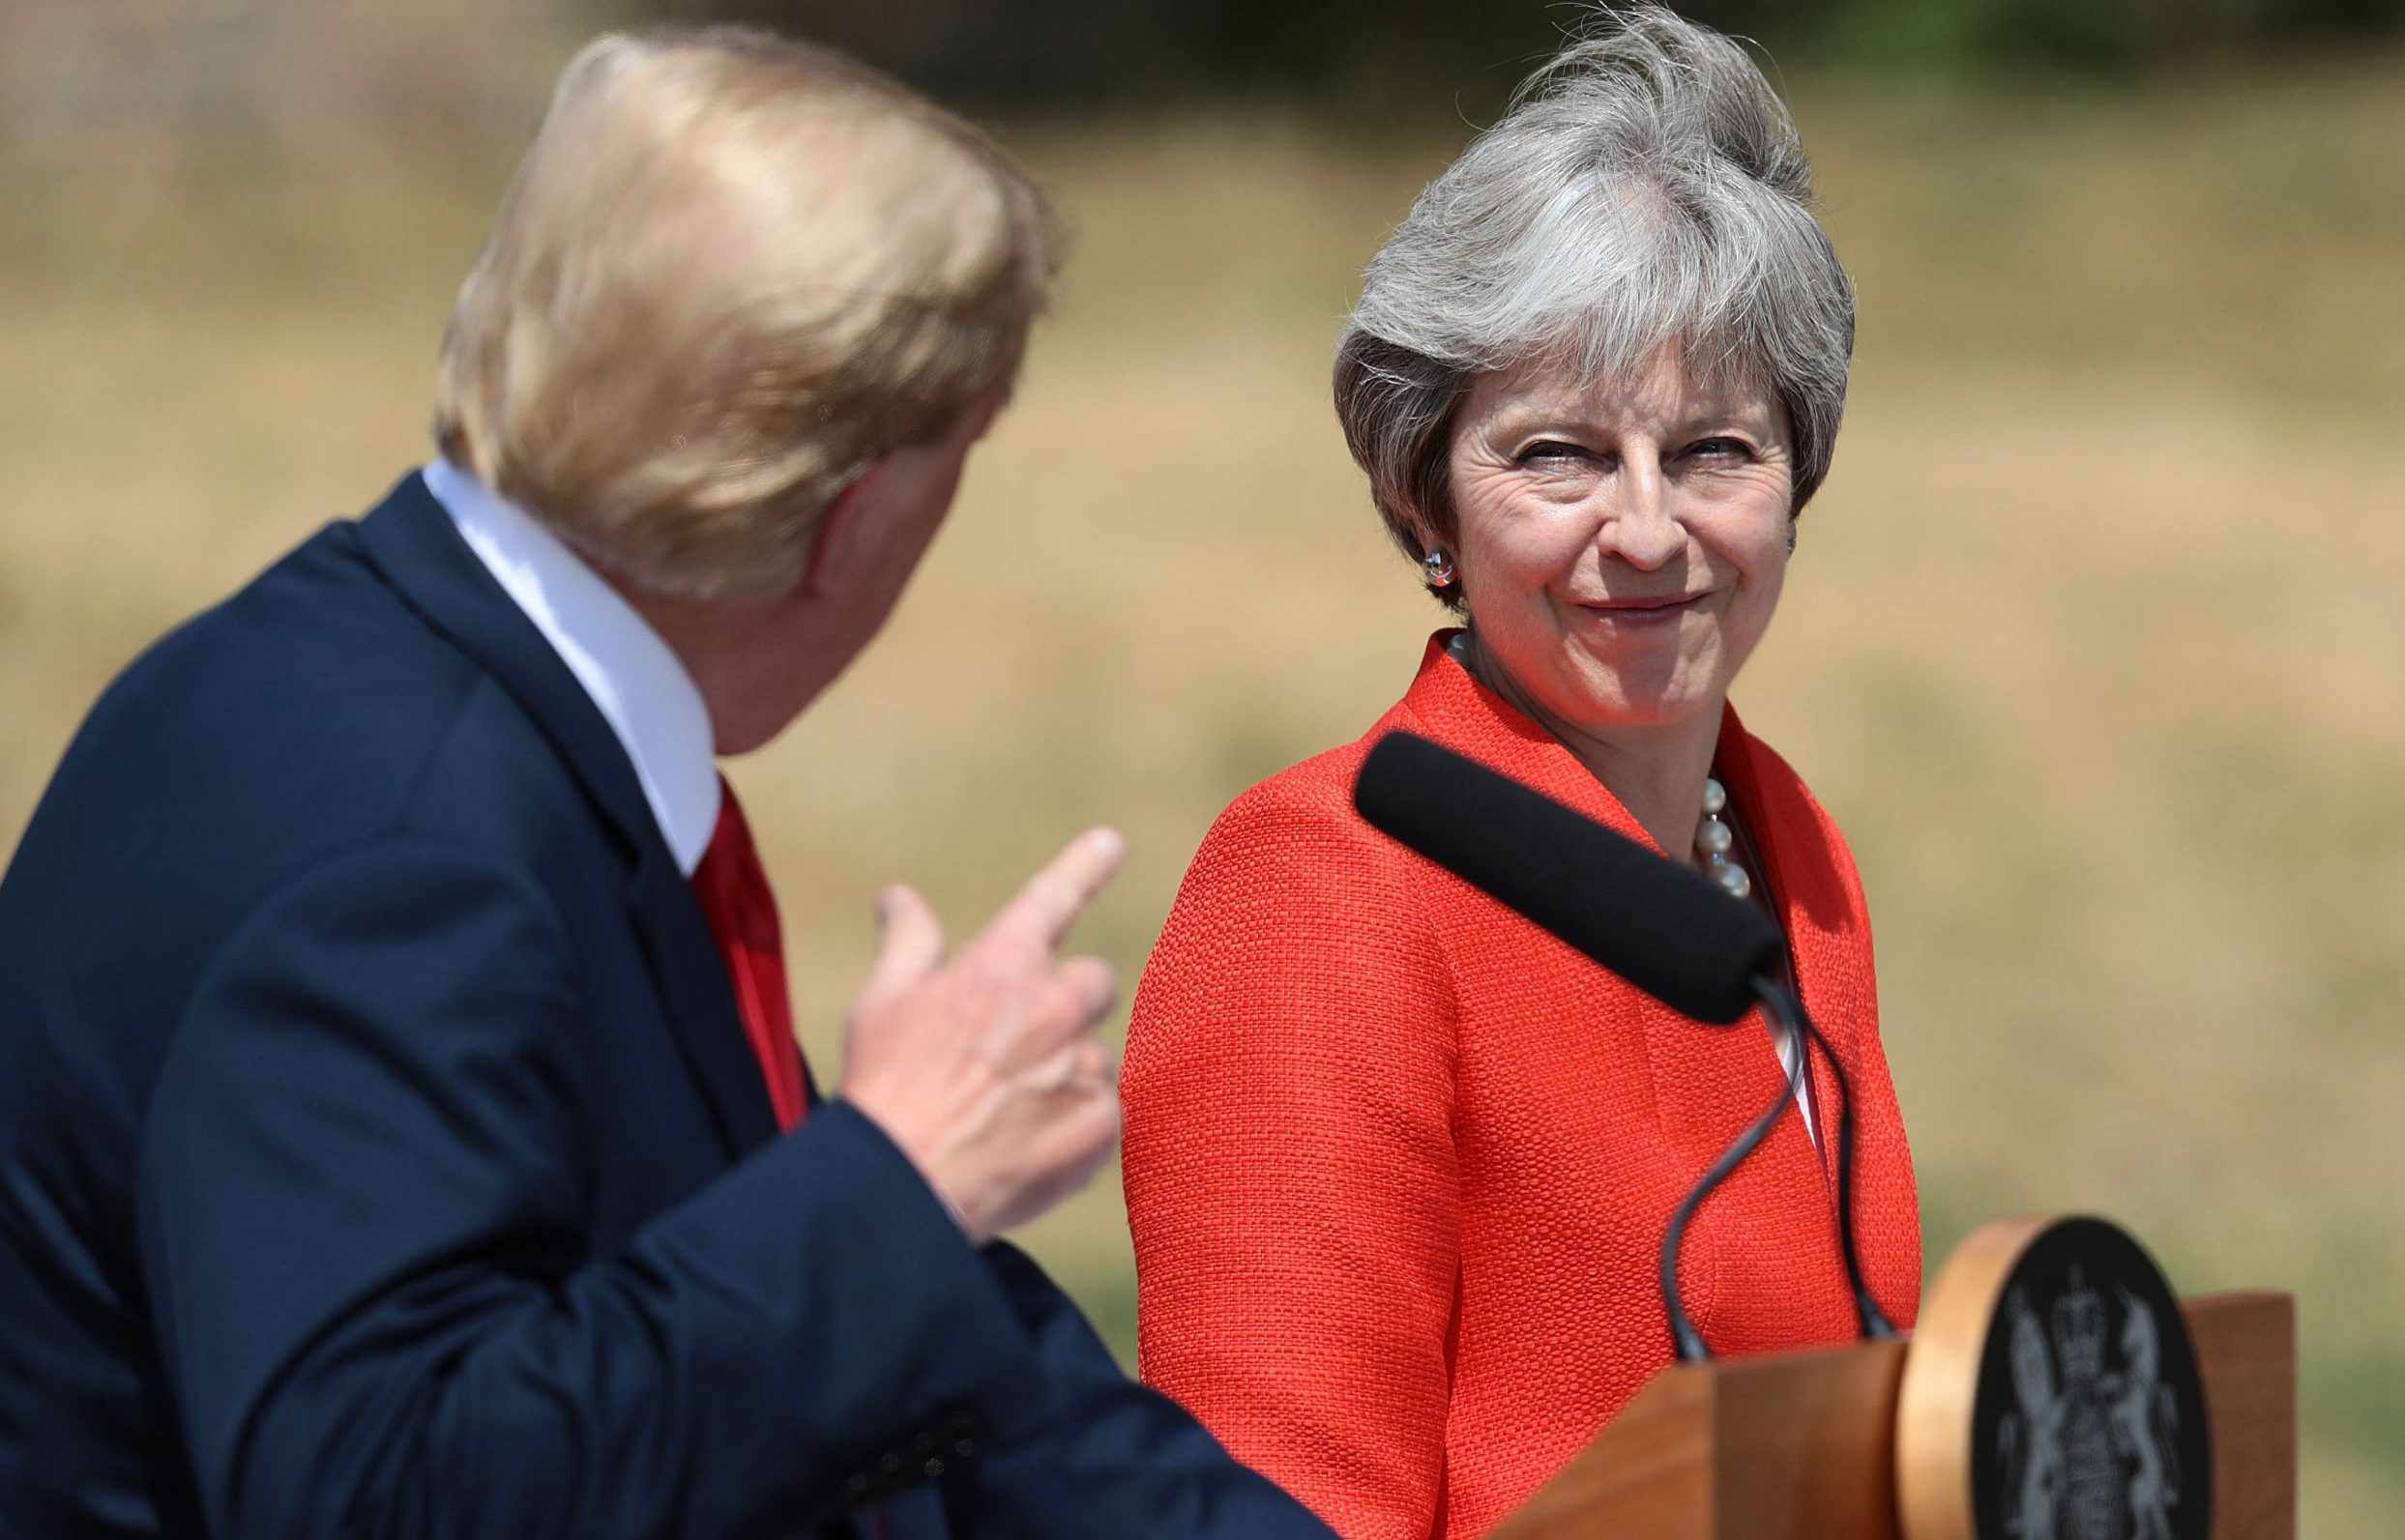 AYLESBURY, ENGLAND - JULY 13: Prime Minister Theresa May and U.S. President Donald Trump attend a joint press conference following their meeting at Chequers on July 13, 2018 in Aylesbury, England. US President, Donald Trump, held bi-lateral talks with British Prime Minister, Theresa May at her grace-and-favour country residence, Chequers. Earlier British newspaper, The Sun, revealed criticisms of Theresa May and her Brexit policy made by President Trump in an exclusive interview. Later today The President and First Lady will join Her Majesty for tea at Windosr Castle. (Photo by Jack Taylor/Getty Images)